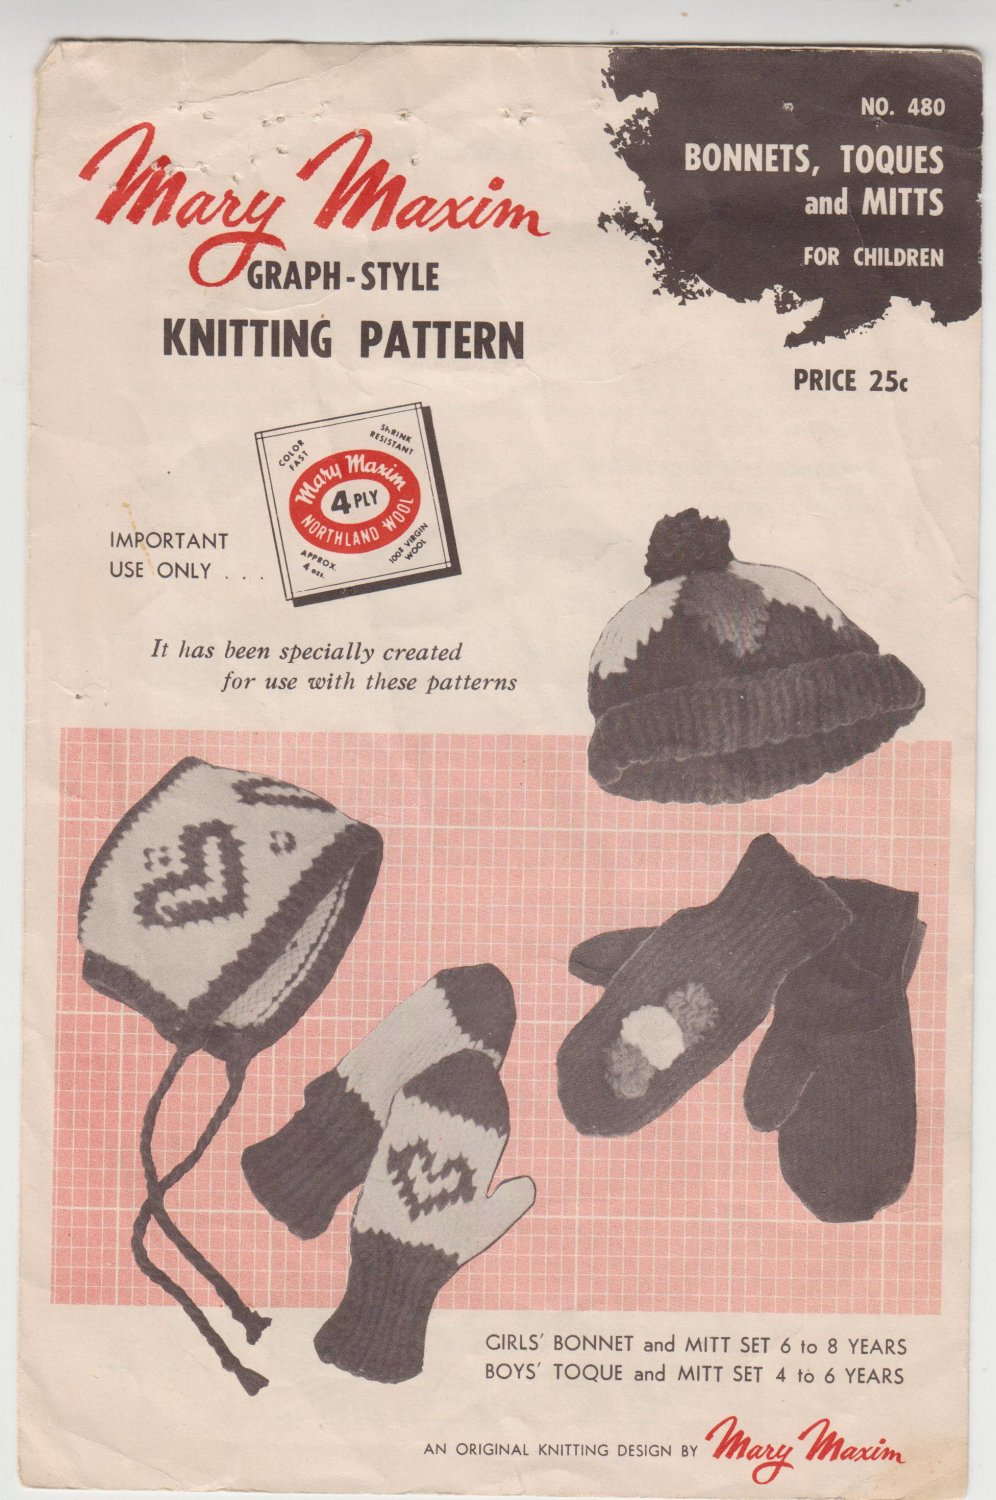 Mary Maxim Graph-Style Knitting Pattern #480 Bonnets,Toques and Mitts for children